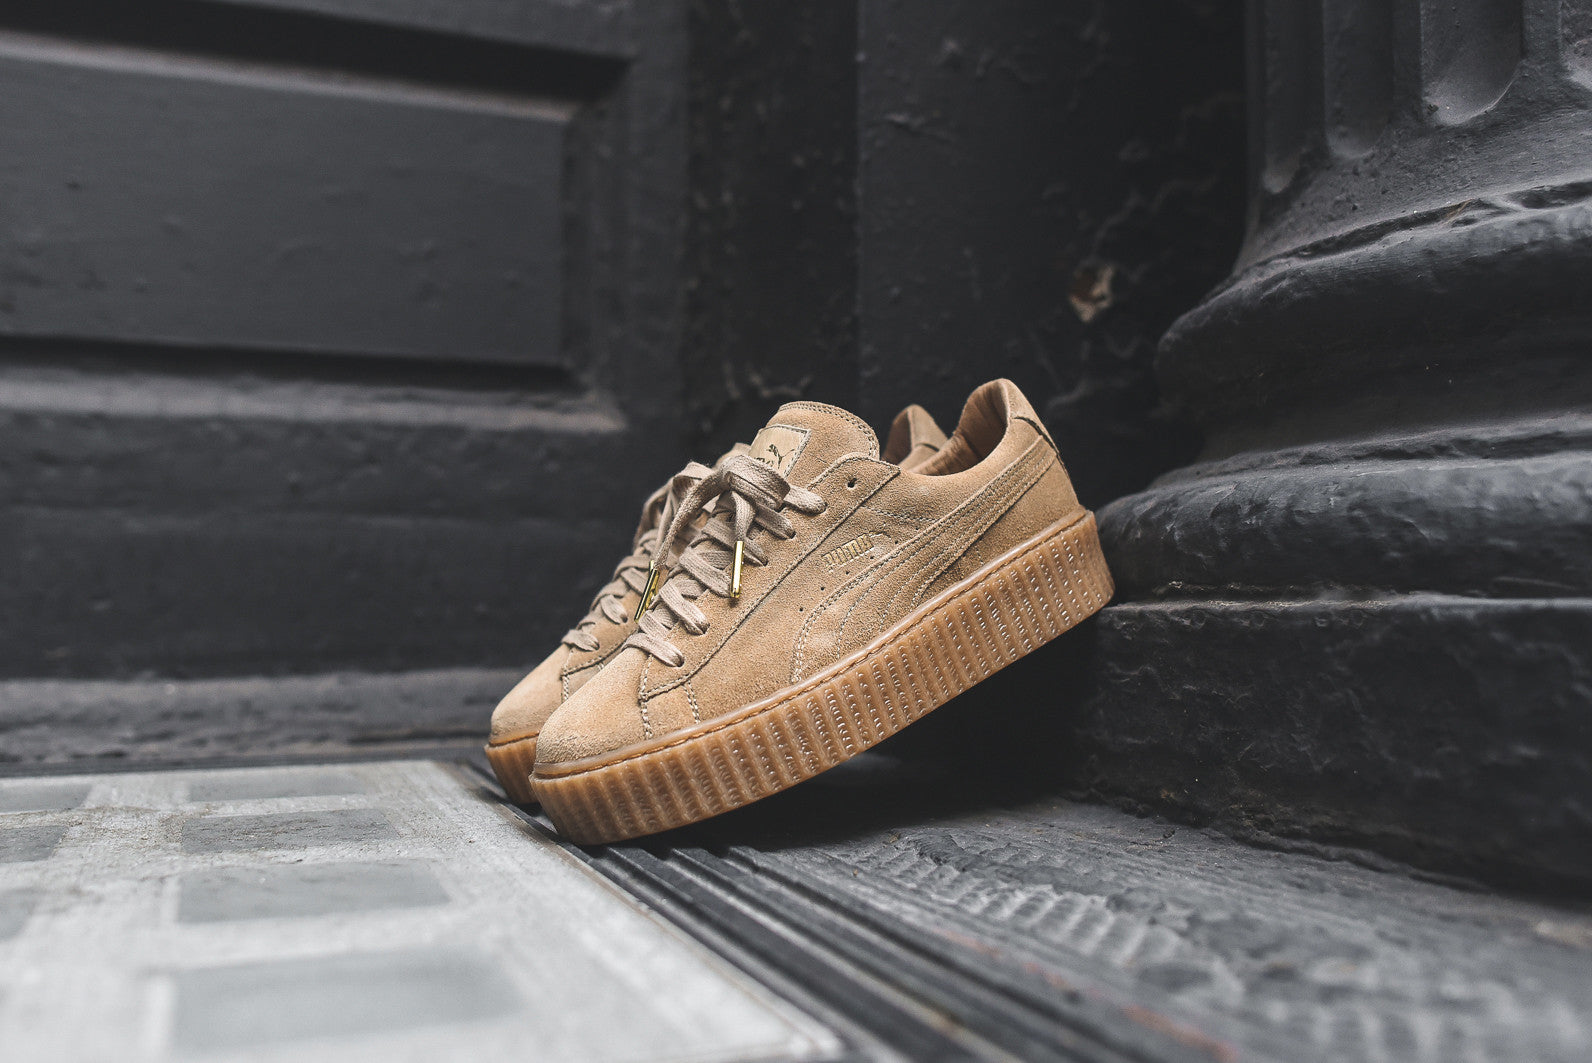 Puma x Rihanna Suede Creeper - Wheat